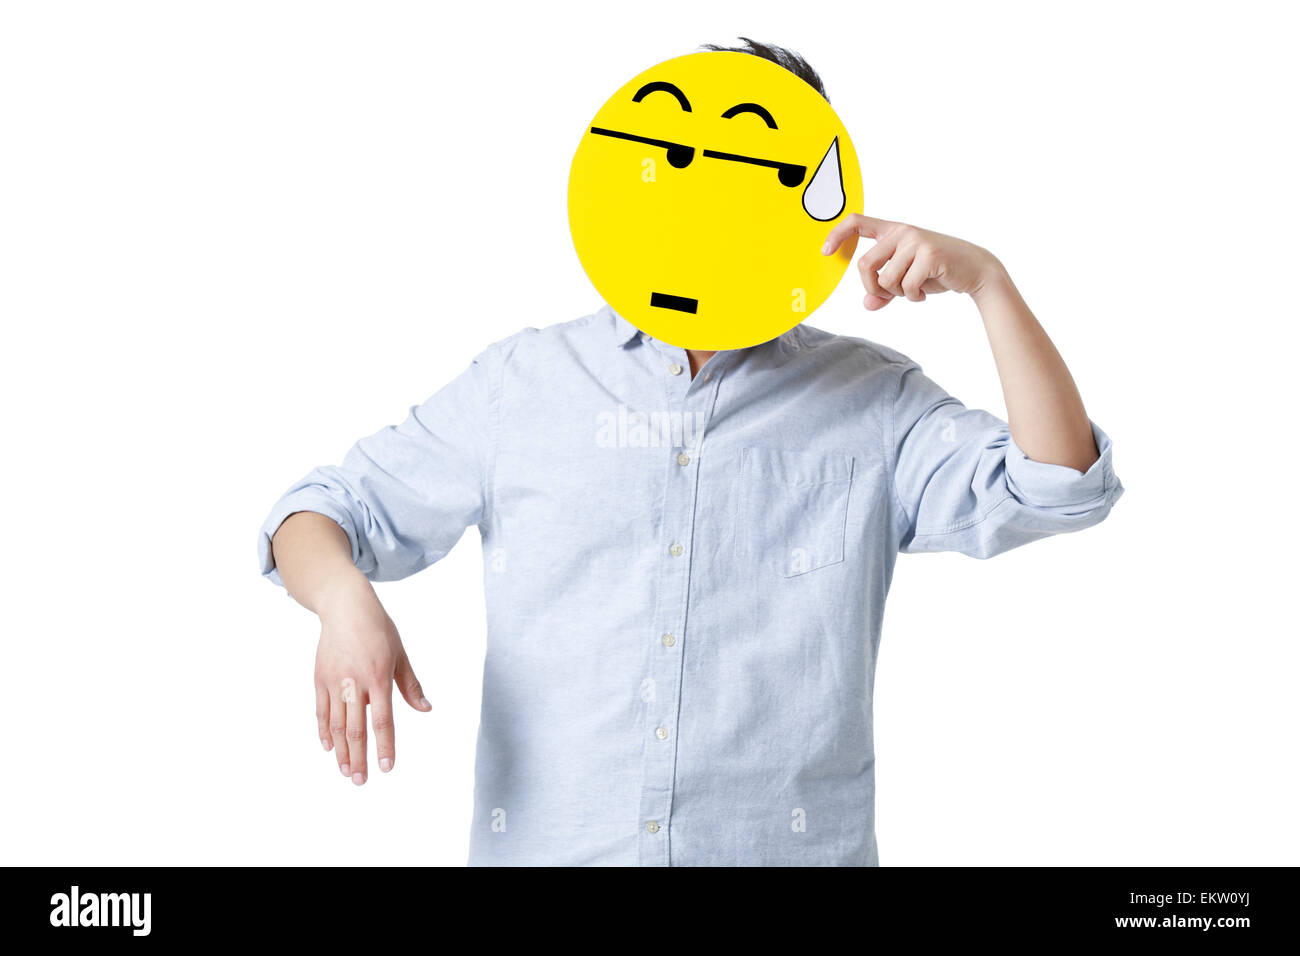 Young man with a embarrassed emoticon face in front of his face - Stock Image